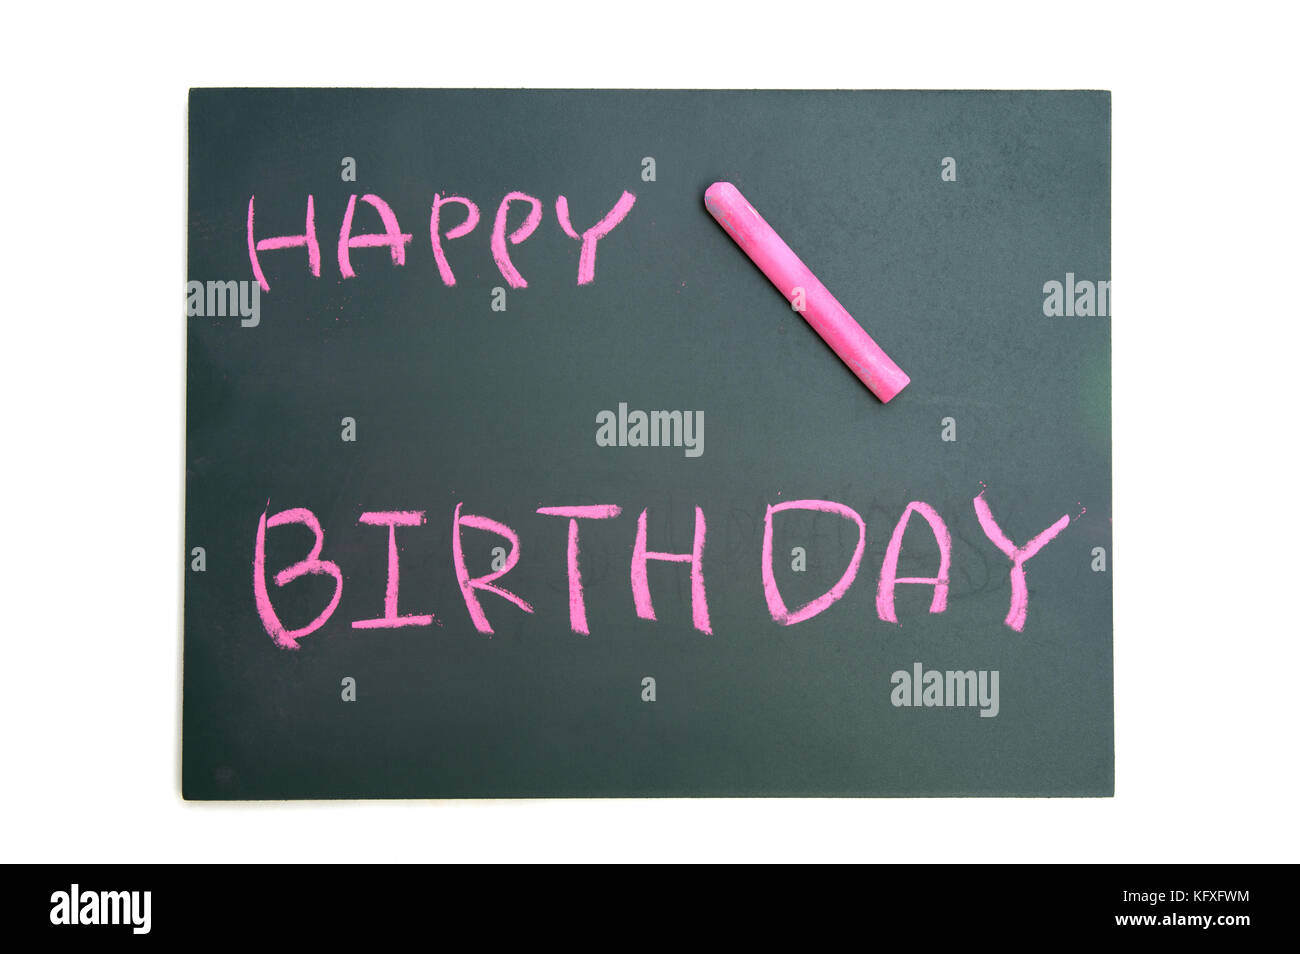 Wooden Happy Birthday Stockfotos & Wooden Happy Birthday Bilder ...